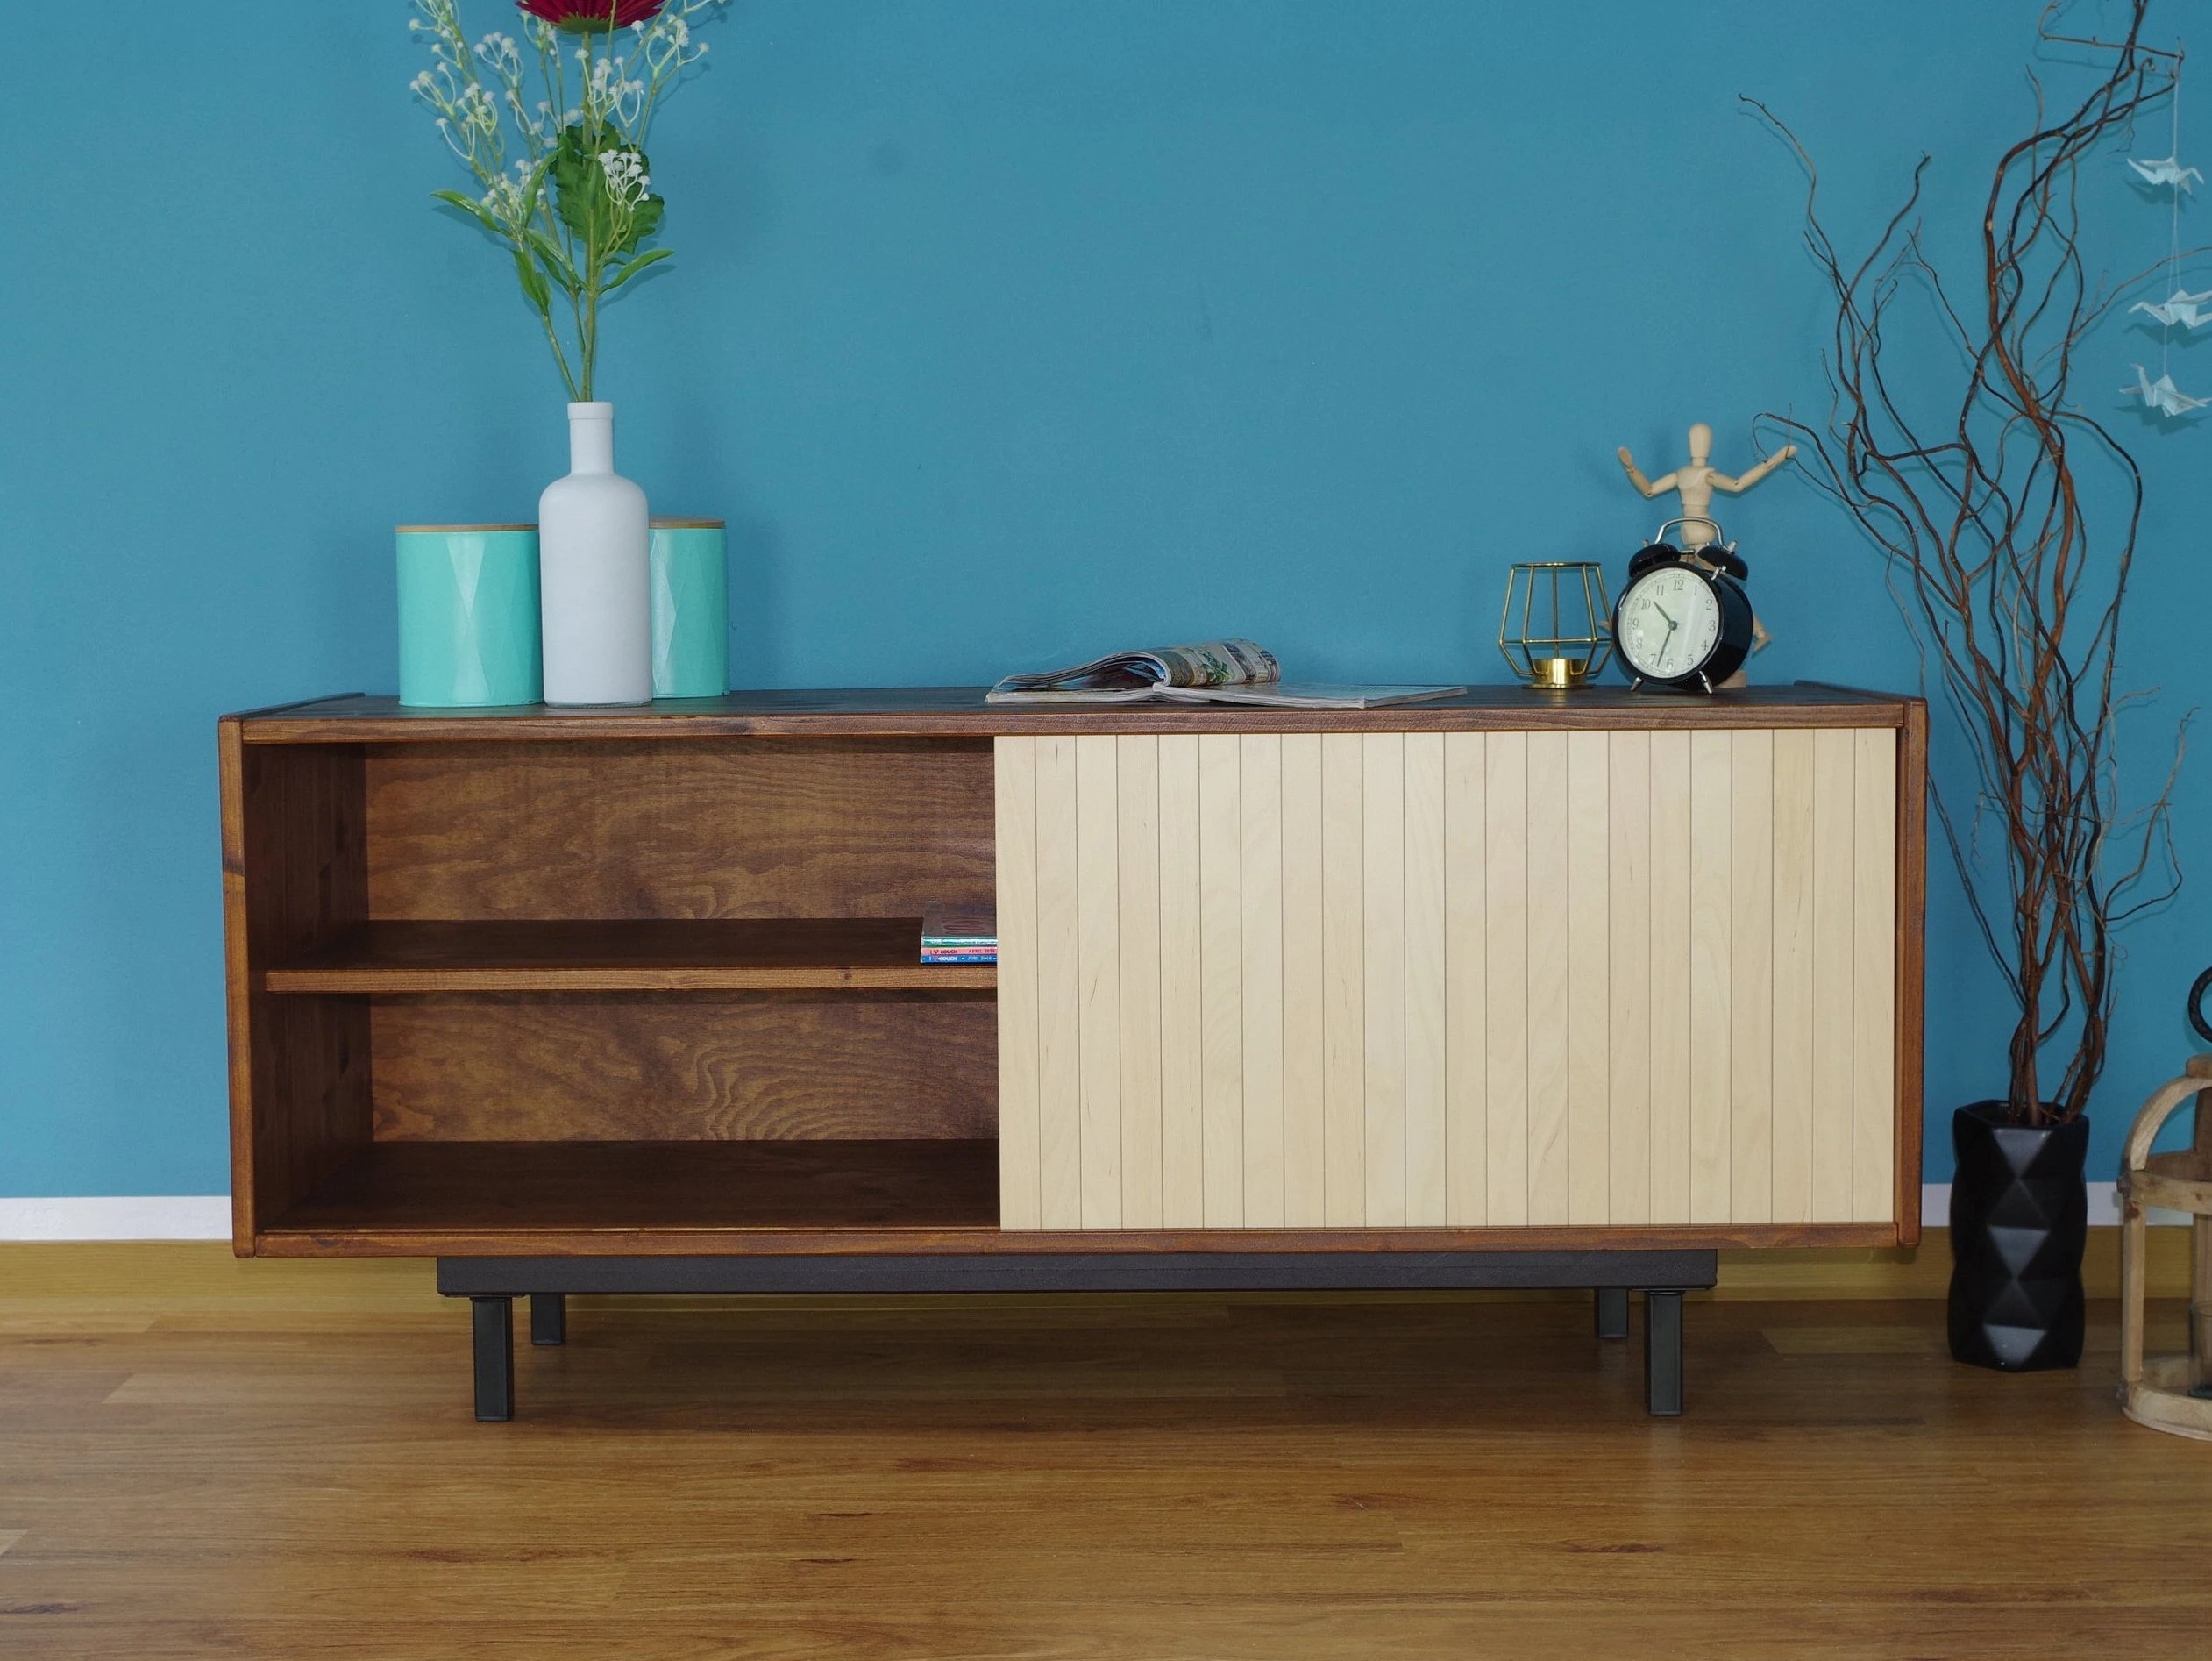 Hifi Lowboard Sideboard Century Vintage Retro Hi Fi Stand Table Lowboard Tv Commit 50s